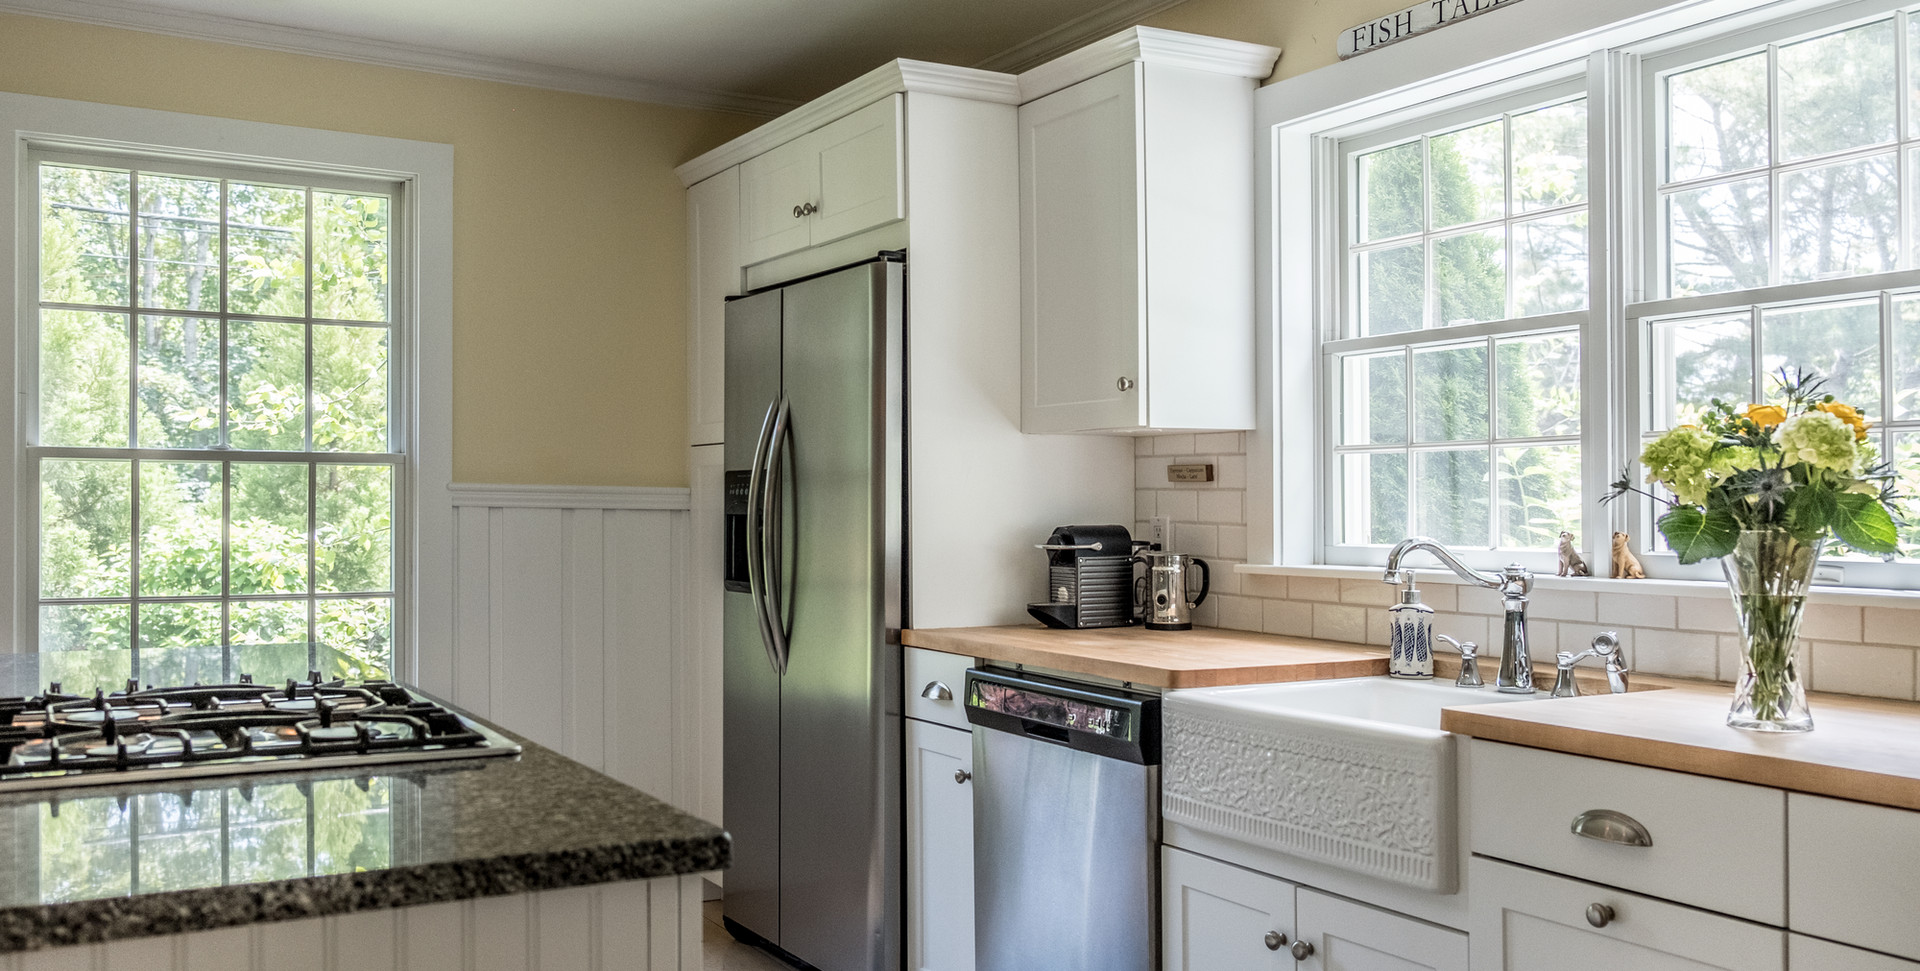 Cape Cod Kitchen with Stainless Steel Appliances